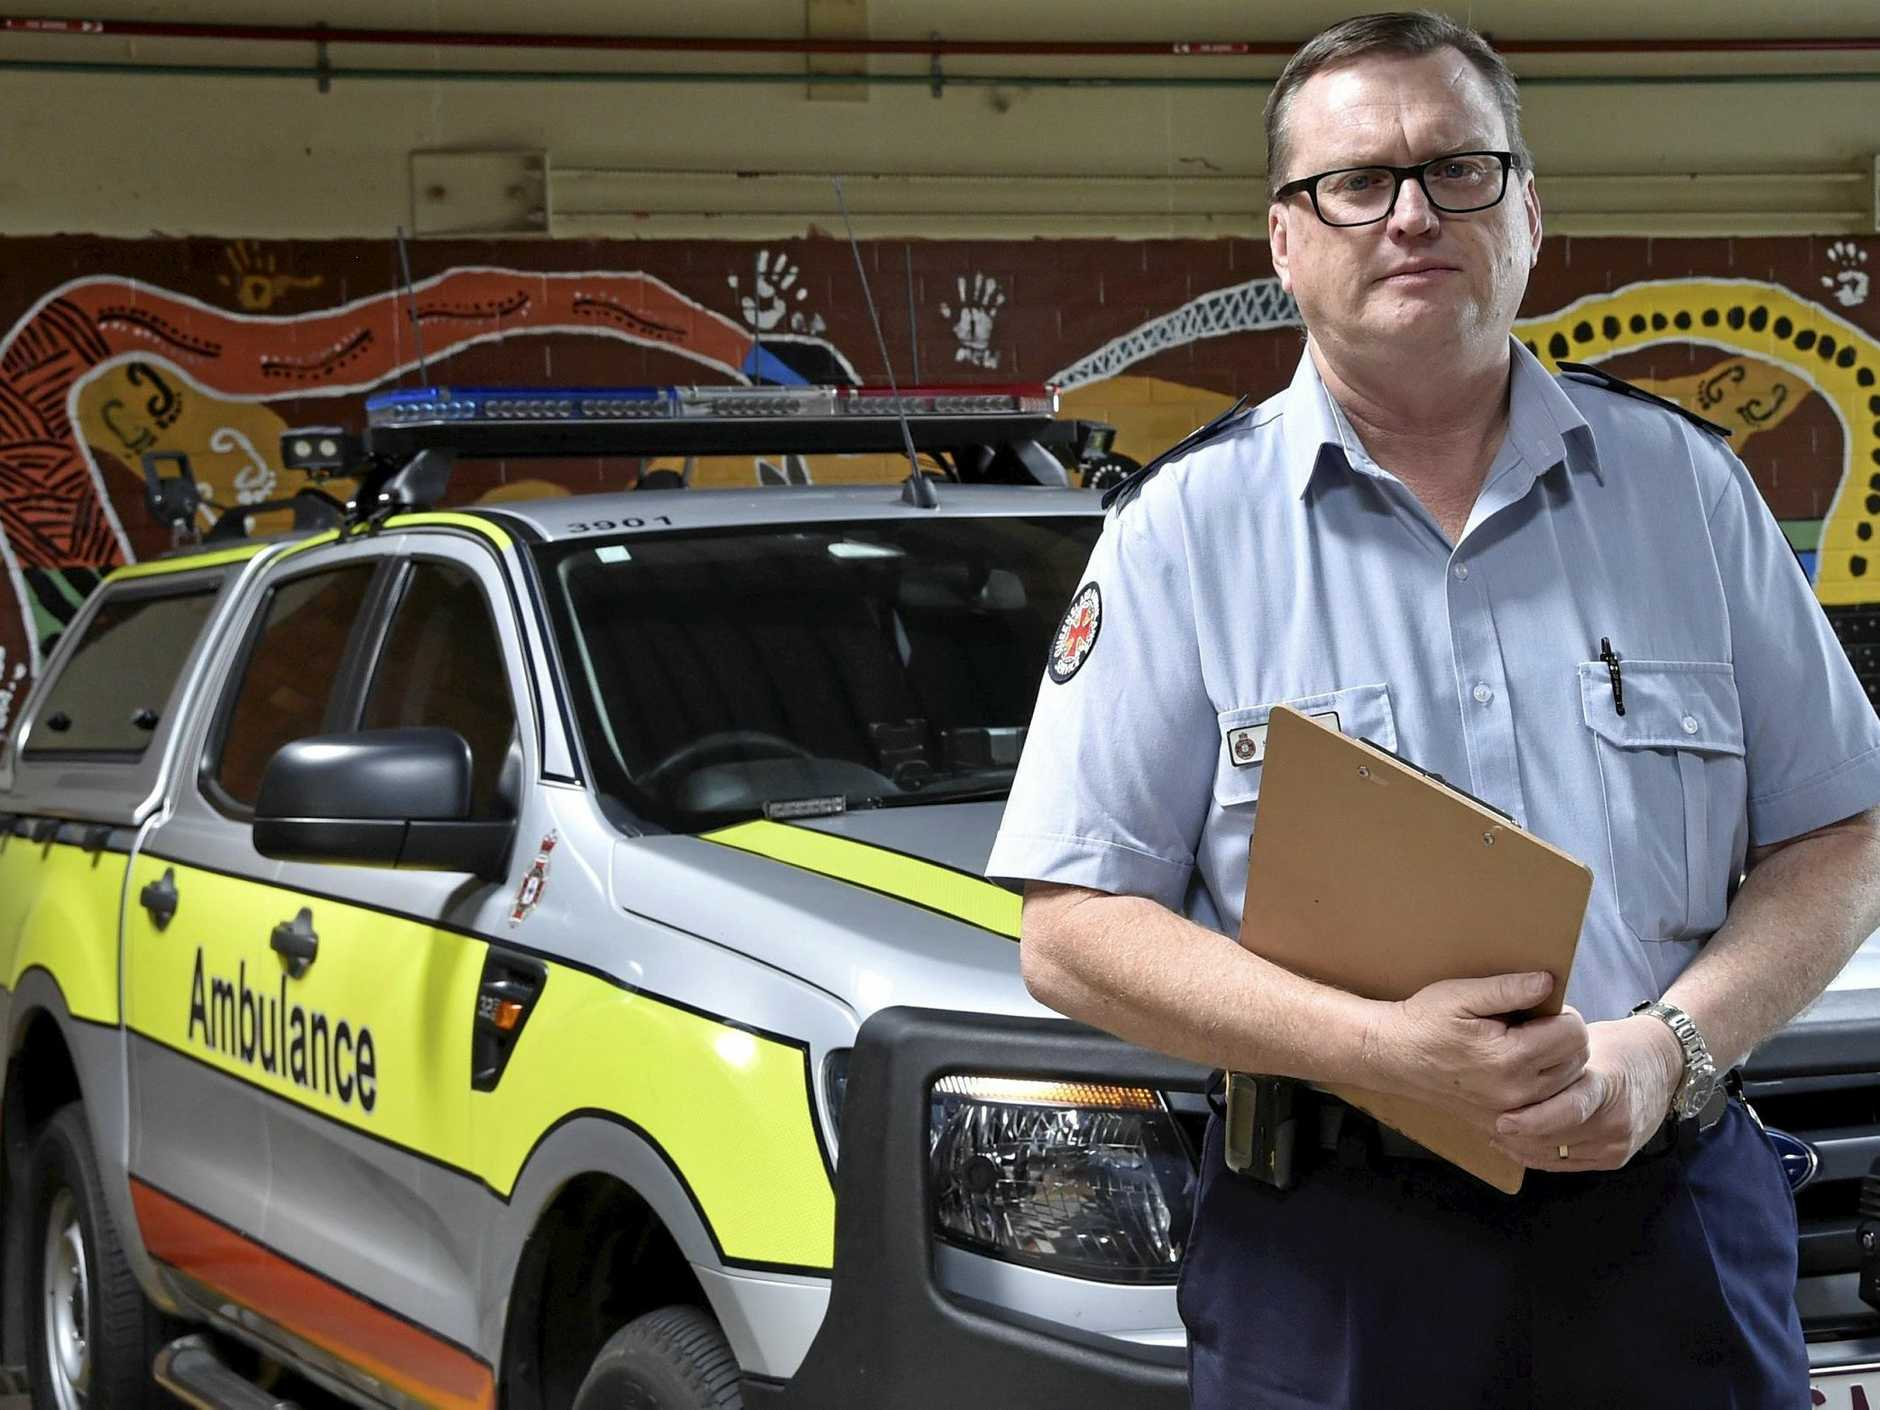 BE ALERT: Queensland Ambulance Service senior operations supervisor Stephen Johns urges drivers to be aware of the Fatal Five.